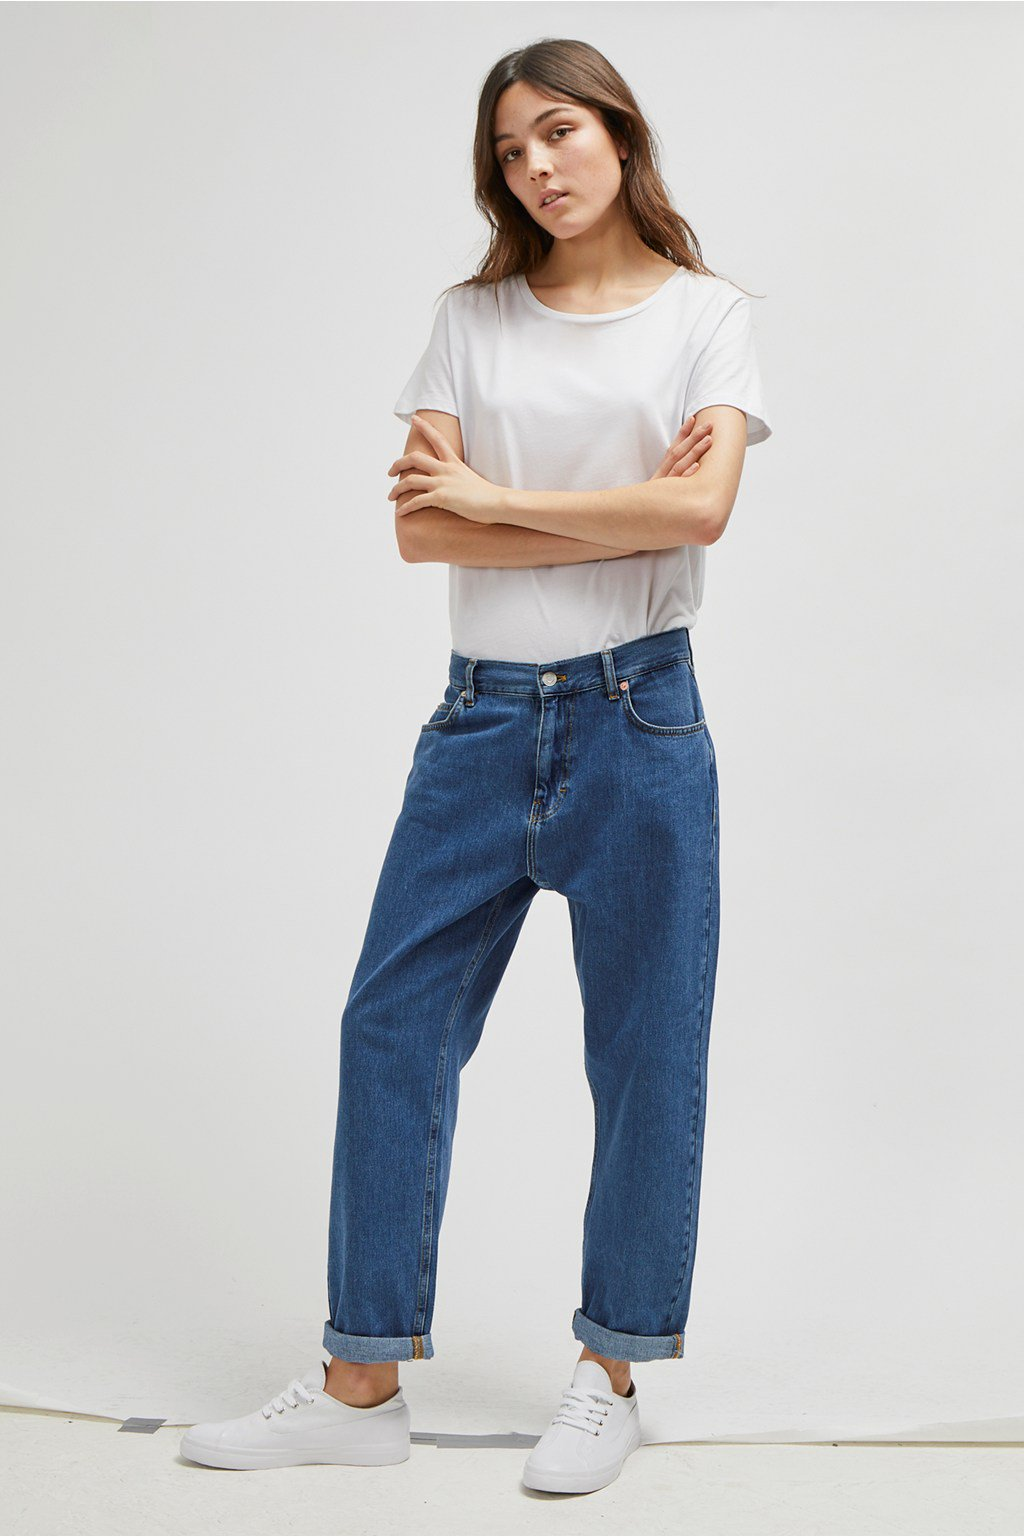 Fitz Denim True Boyfriend Jeans   Trousers And Pants   French Connection Usa